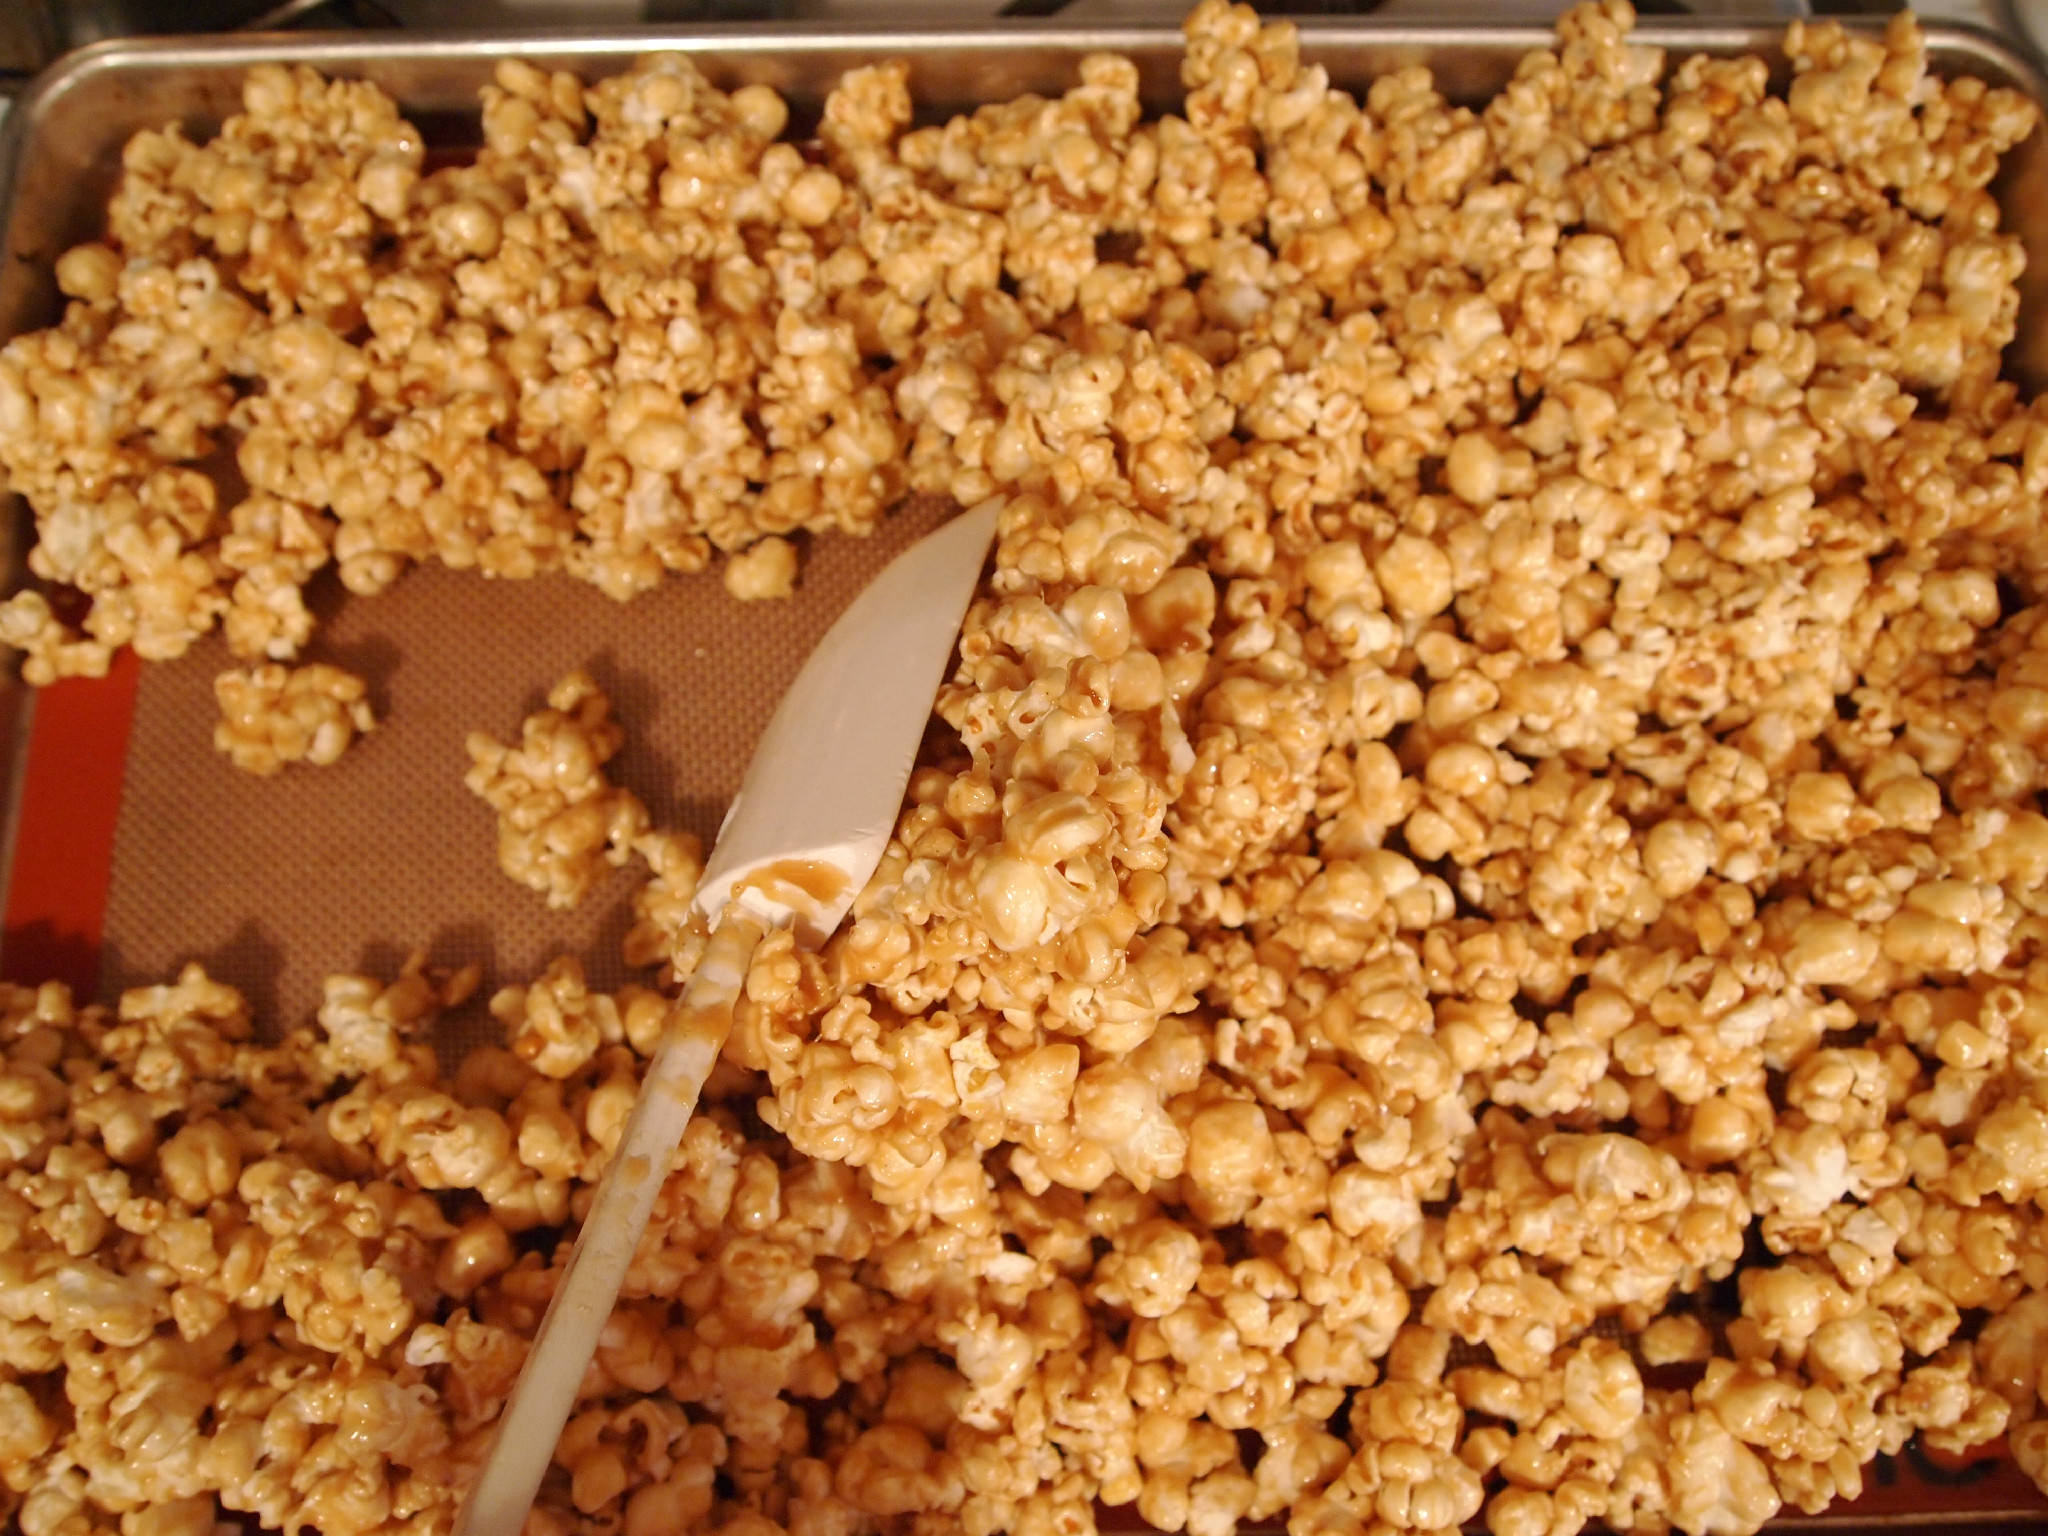 stir and break clumps in vanilla caramel corn